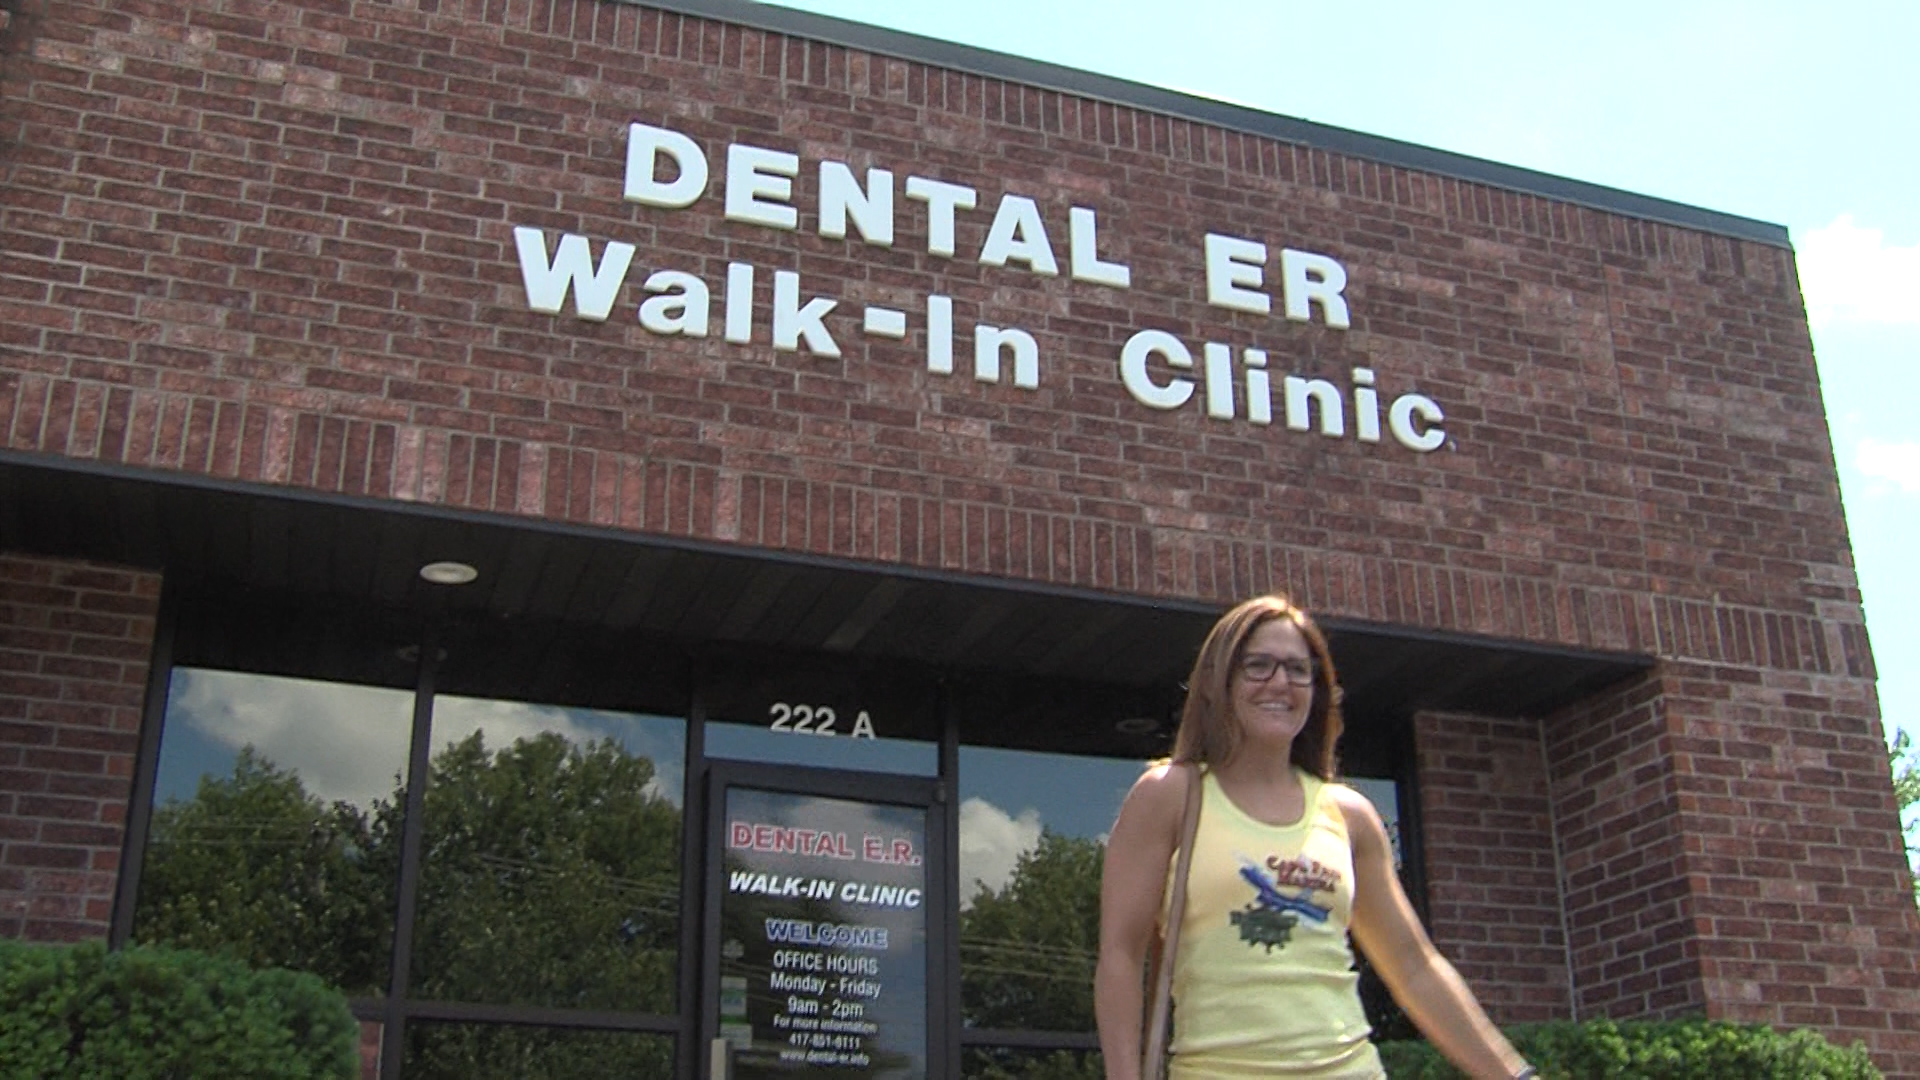 Kitchen Dental Clinic Springfield Mo Wow Blog